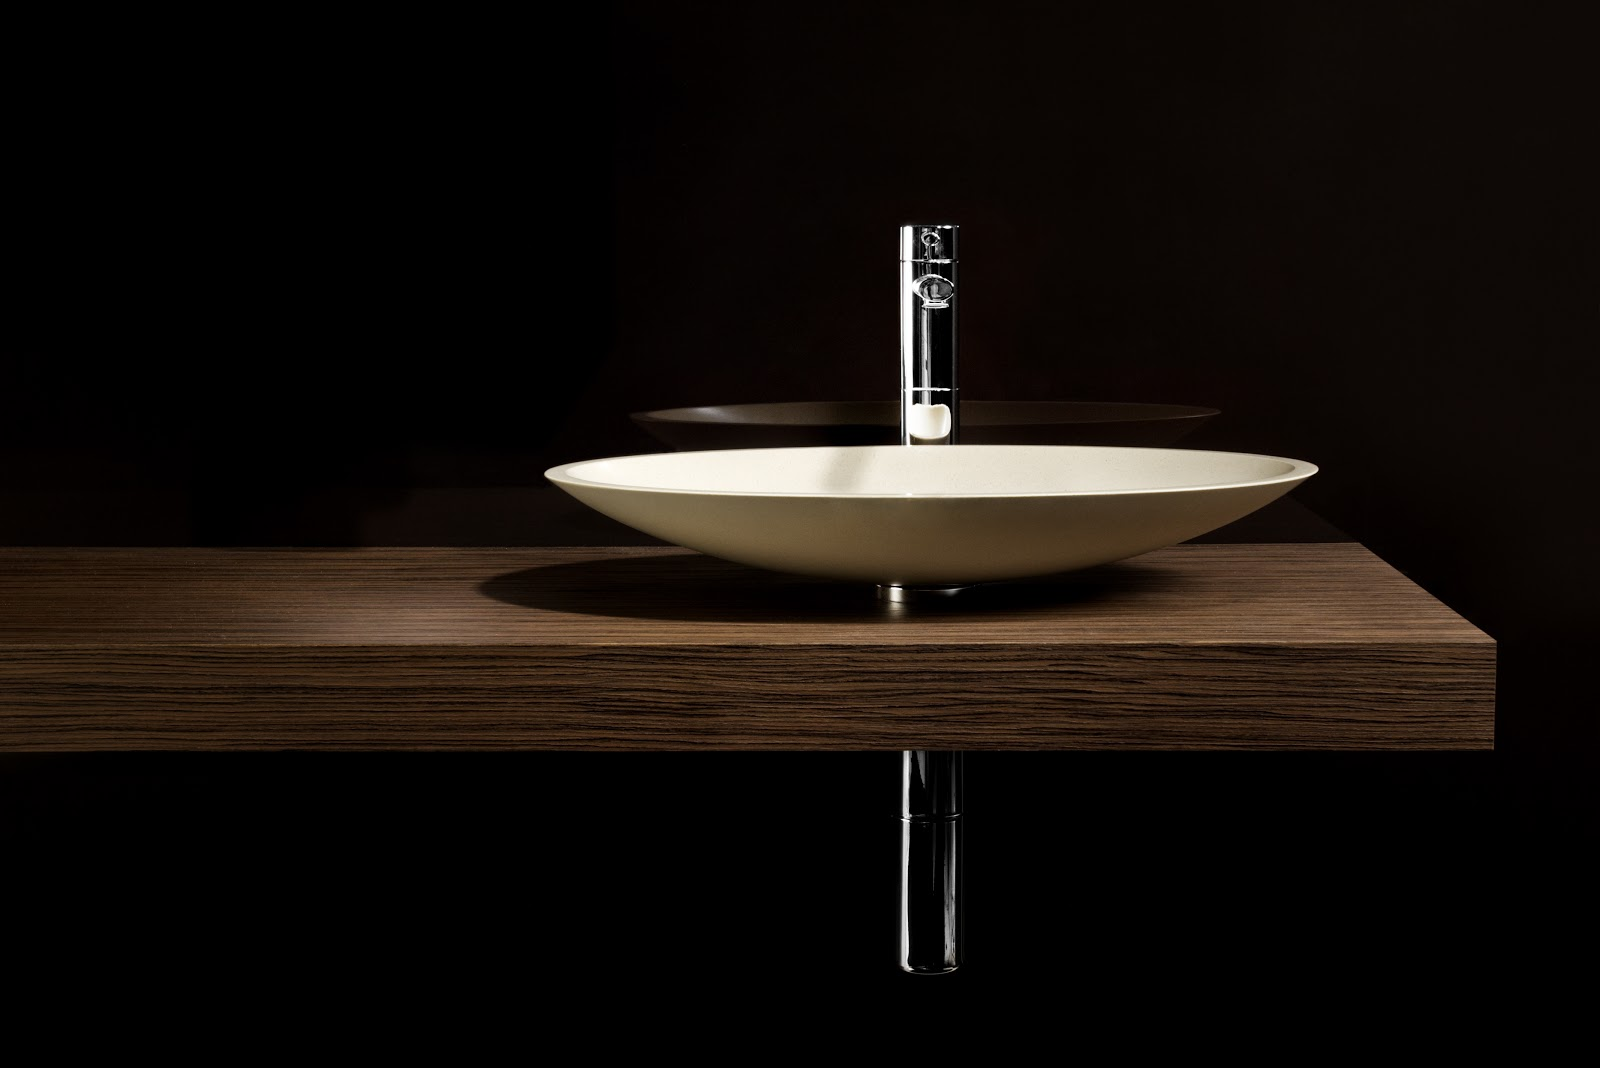 Proudly Australian Brand Minosa Has Been Designing And Manufacturing Premium Bathroom Wares In Sydney Since Being Co Founded By Cabinet Maker Darren Genner